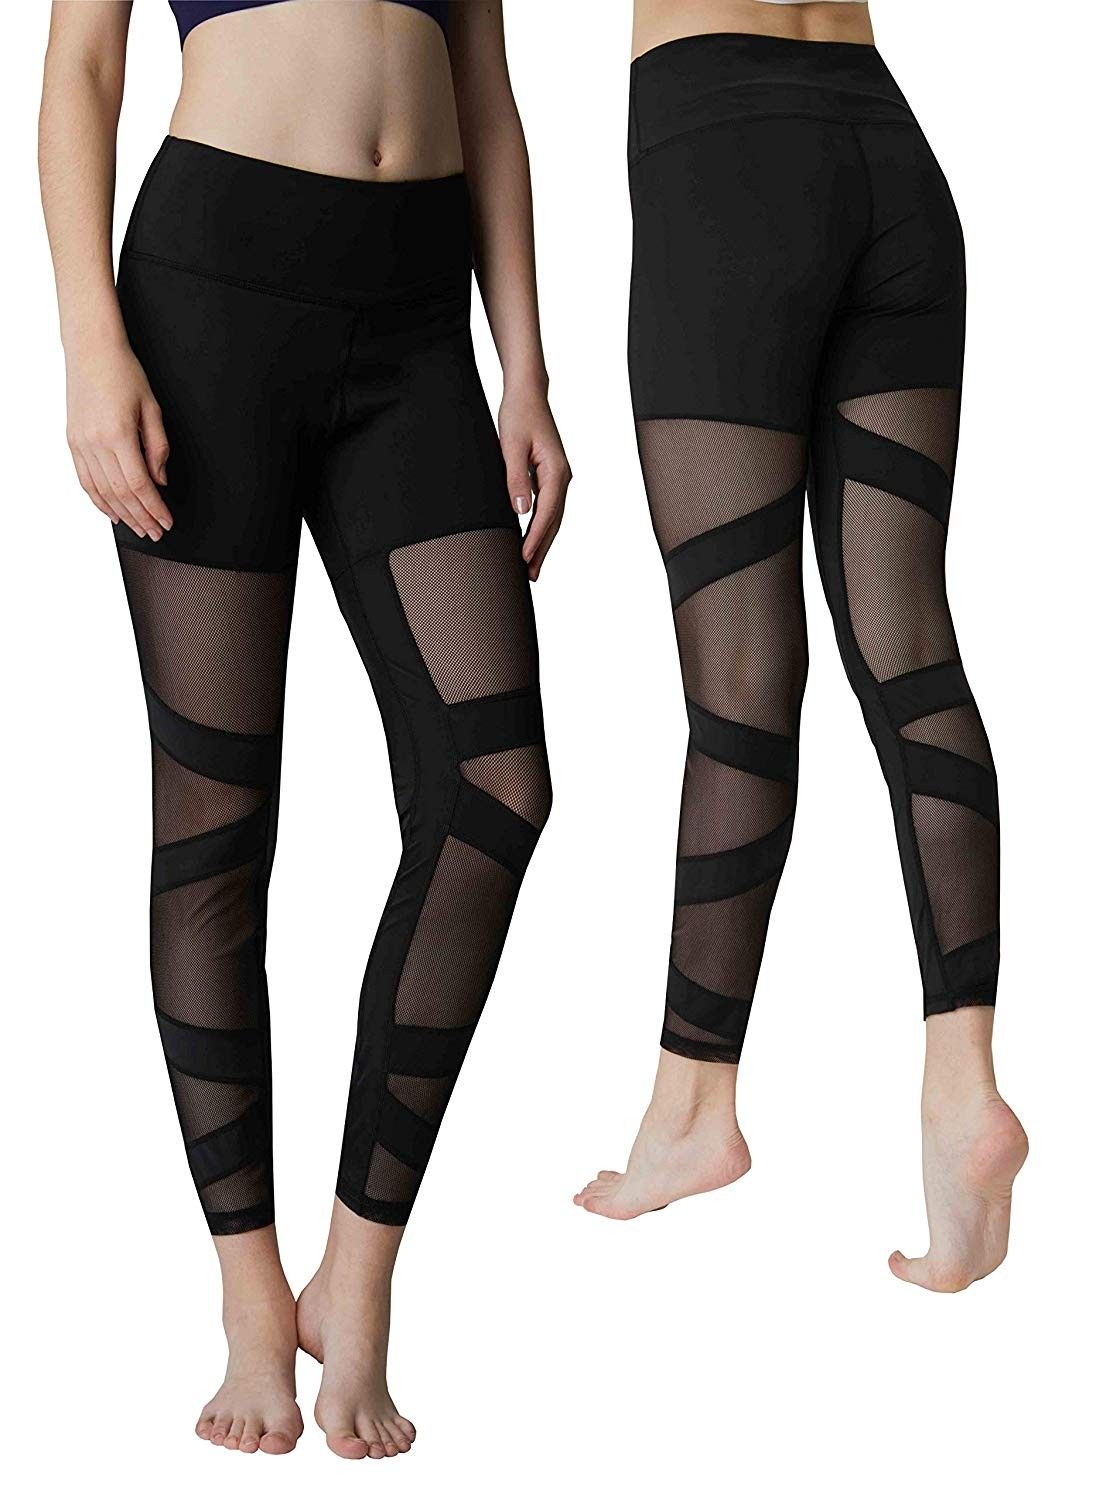 Yoga Pants High Waist Breathable Sport Leggings Tummy Control Sport Workout Stretch Tight Bottoms -...